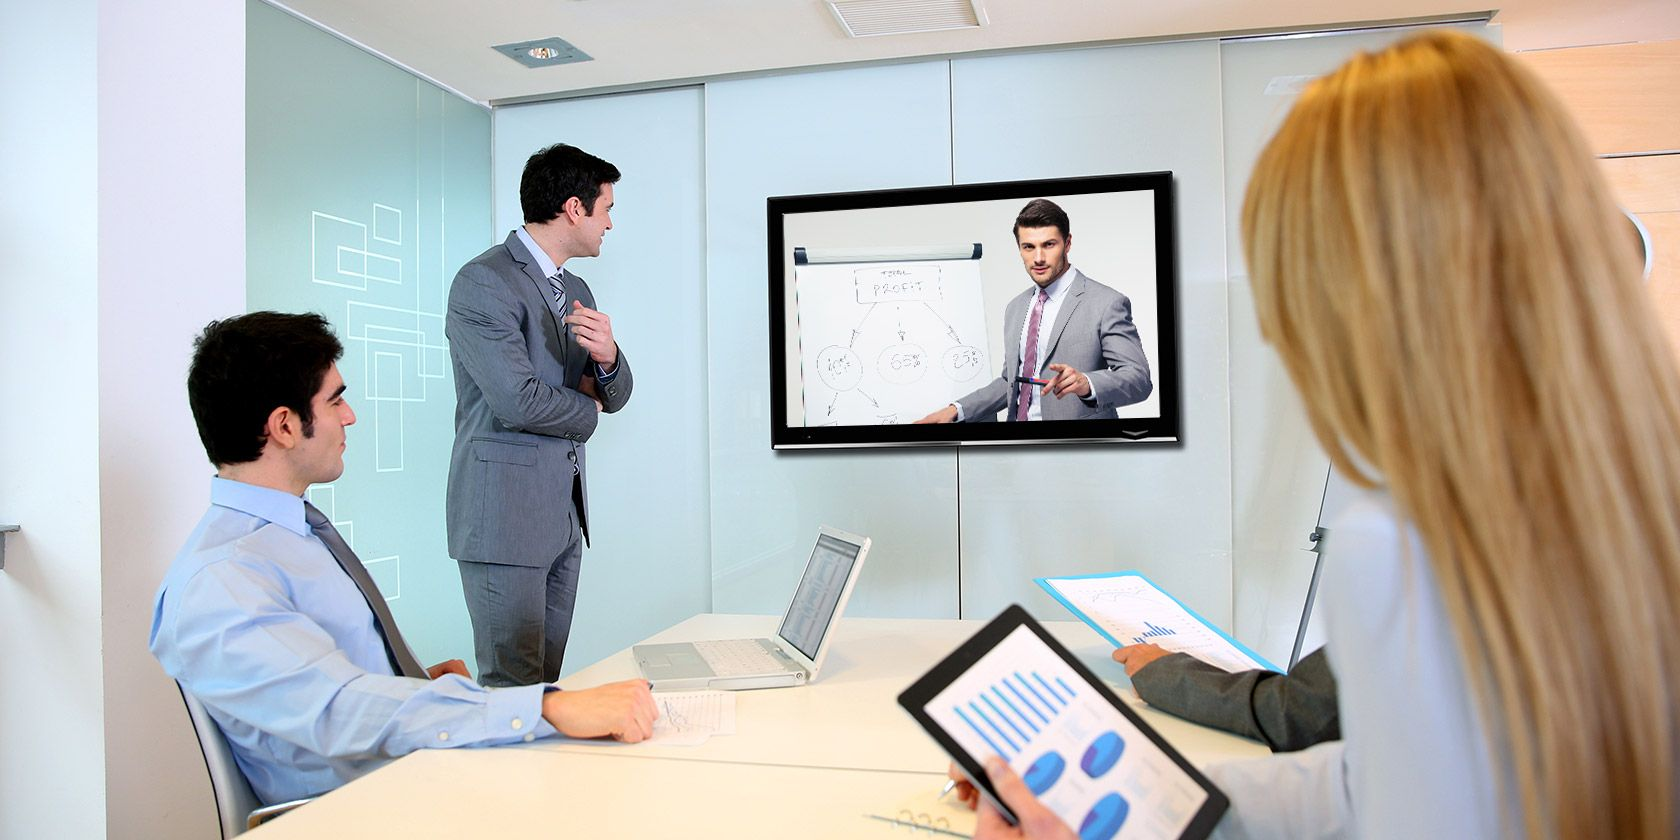 5 Tools to Give an Online Presentation From Anywhere